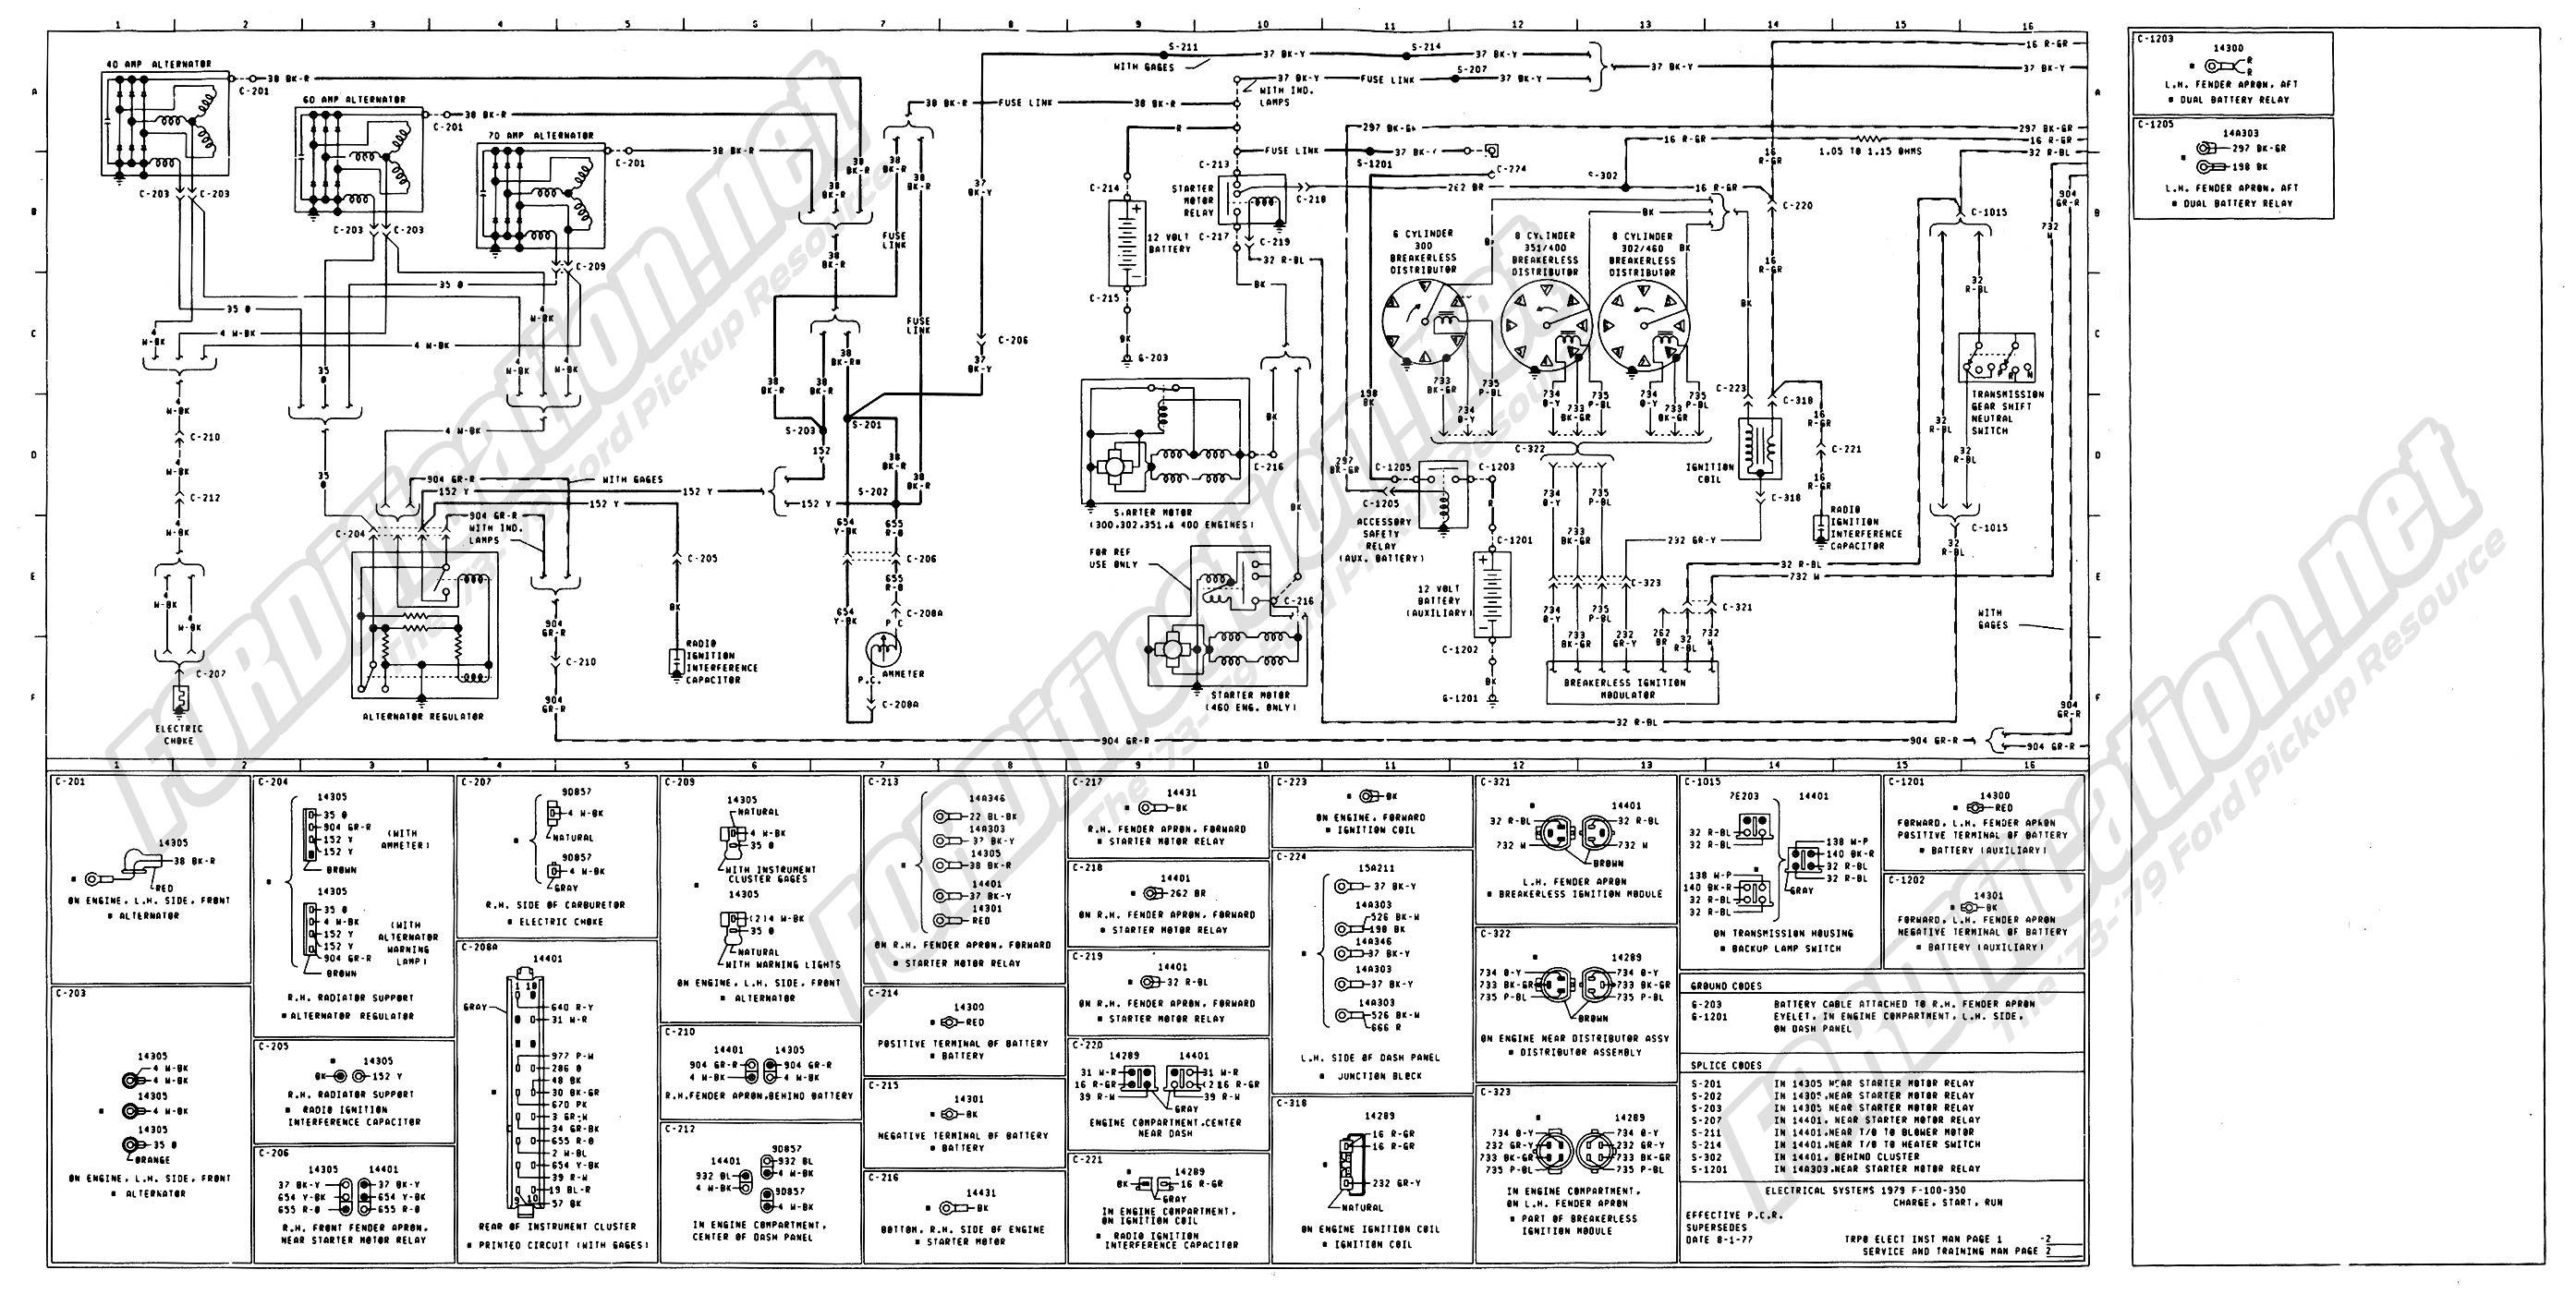 1992 Ford Bronco Wiring Diagram Worksheet And 1993 1979 Schematics Detailed Rh Jppastryarts Com 1989 1986